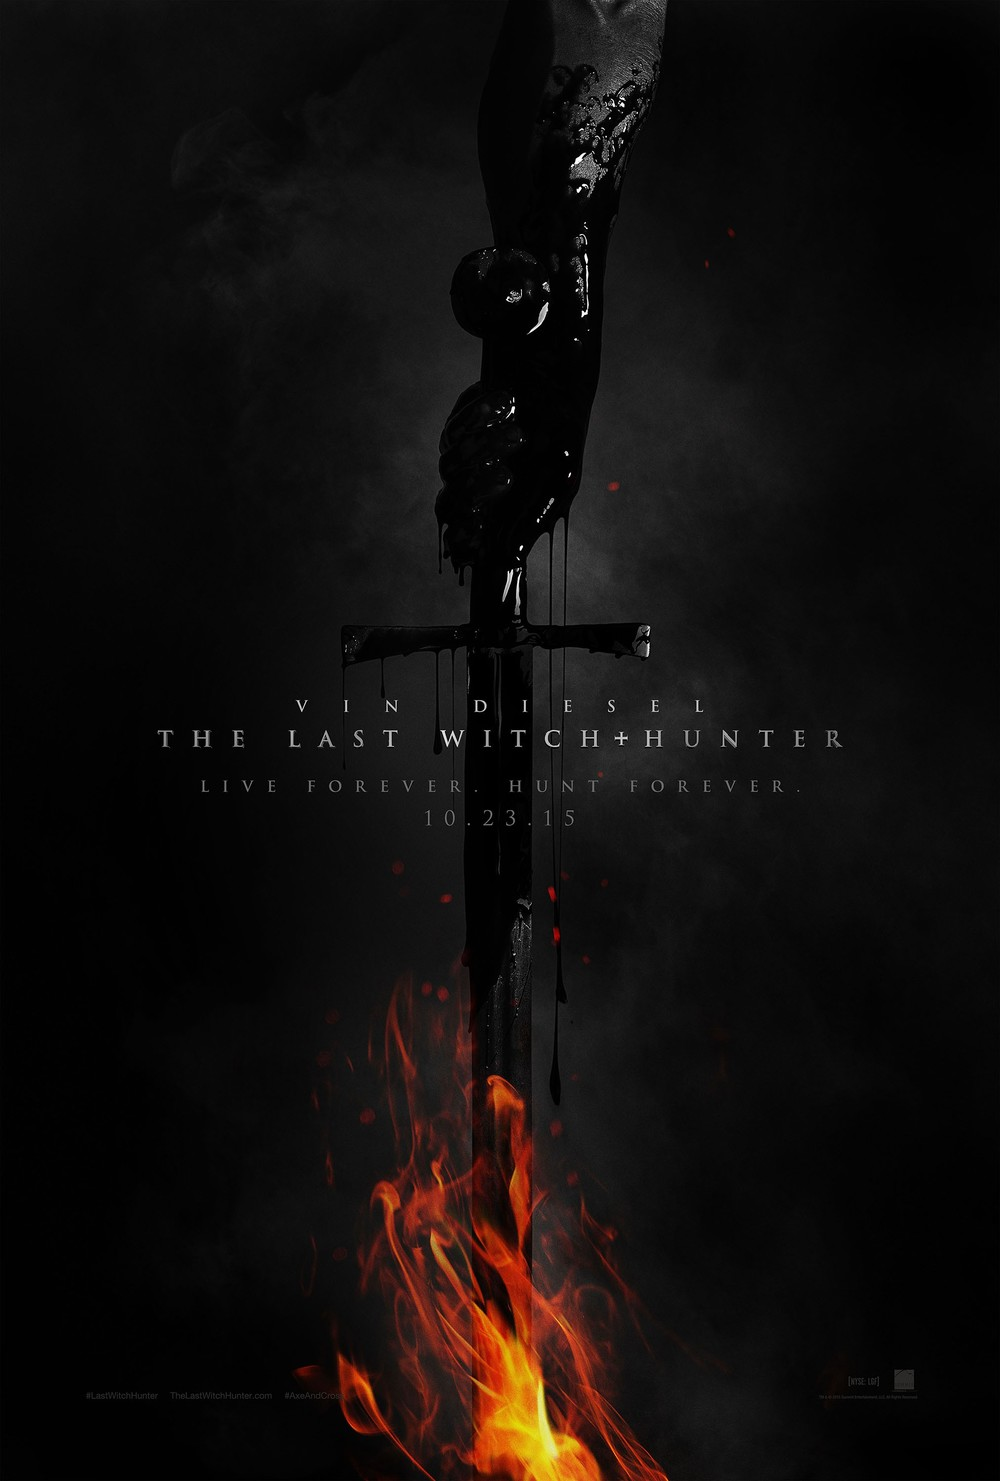 This poster hints at a far better movie than what it actually seems to be based on the terrible reviews and worse trailers. The design is striking and badass-looking.